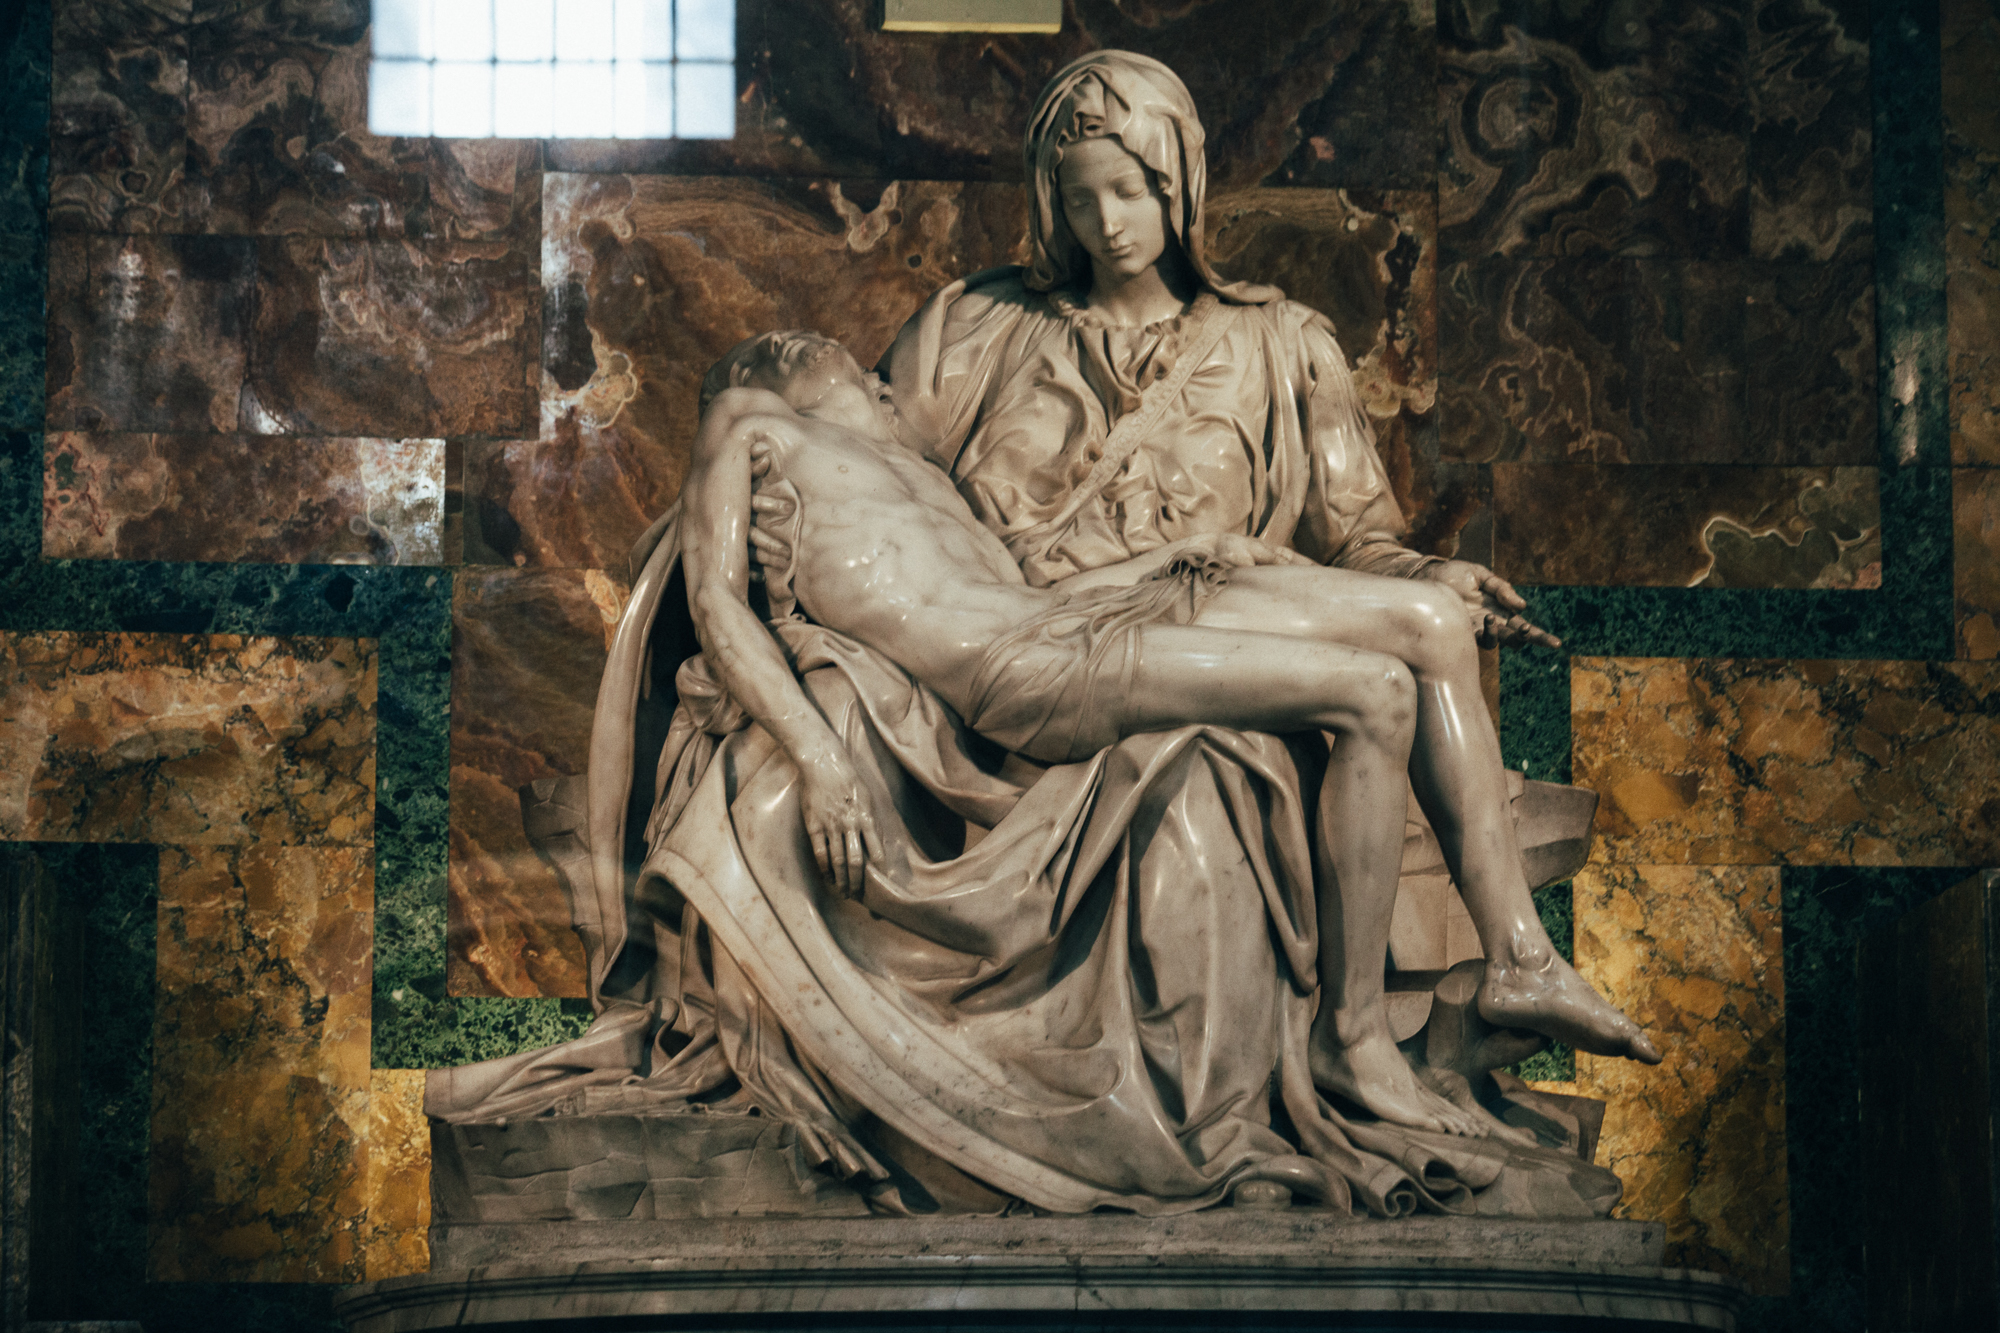 the pietà by michaelangelo, saint peter's basilica, vatican city. by leonie wise